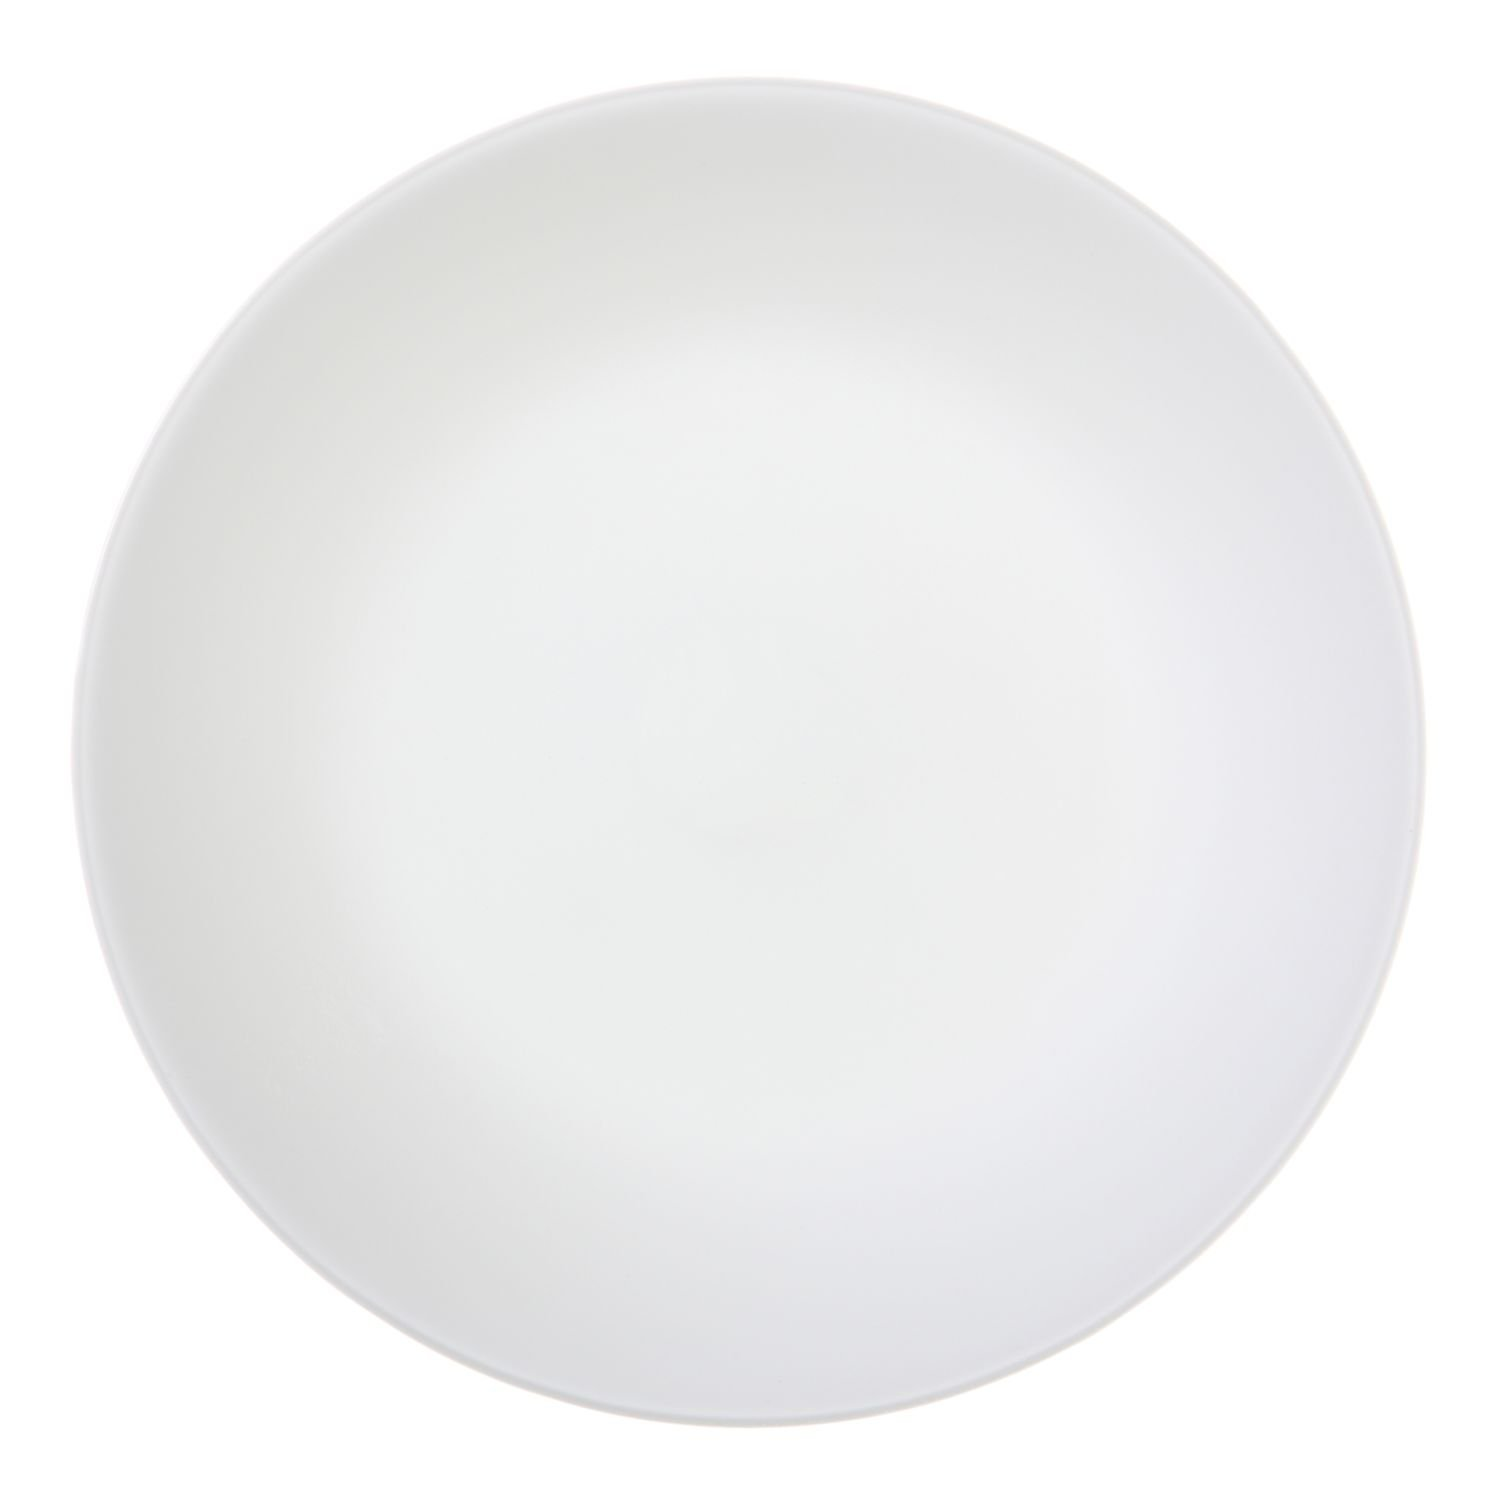 "Corelle Livingware Winter Frost White 10.25"" Dinner Plate (Set of 8)"